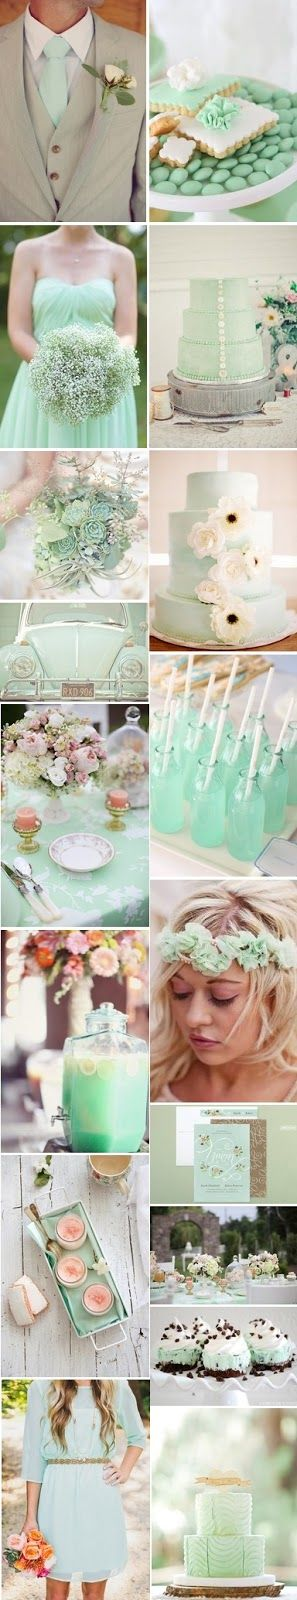 A {Kiss} of Color | Style, Decor, DIY's, Beauty, Weddings, Life.: Be Inspired: The Mint Wedding MINT!!! OBSESSED!